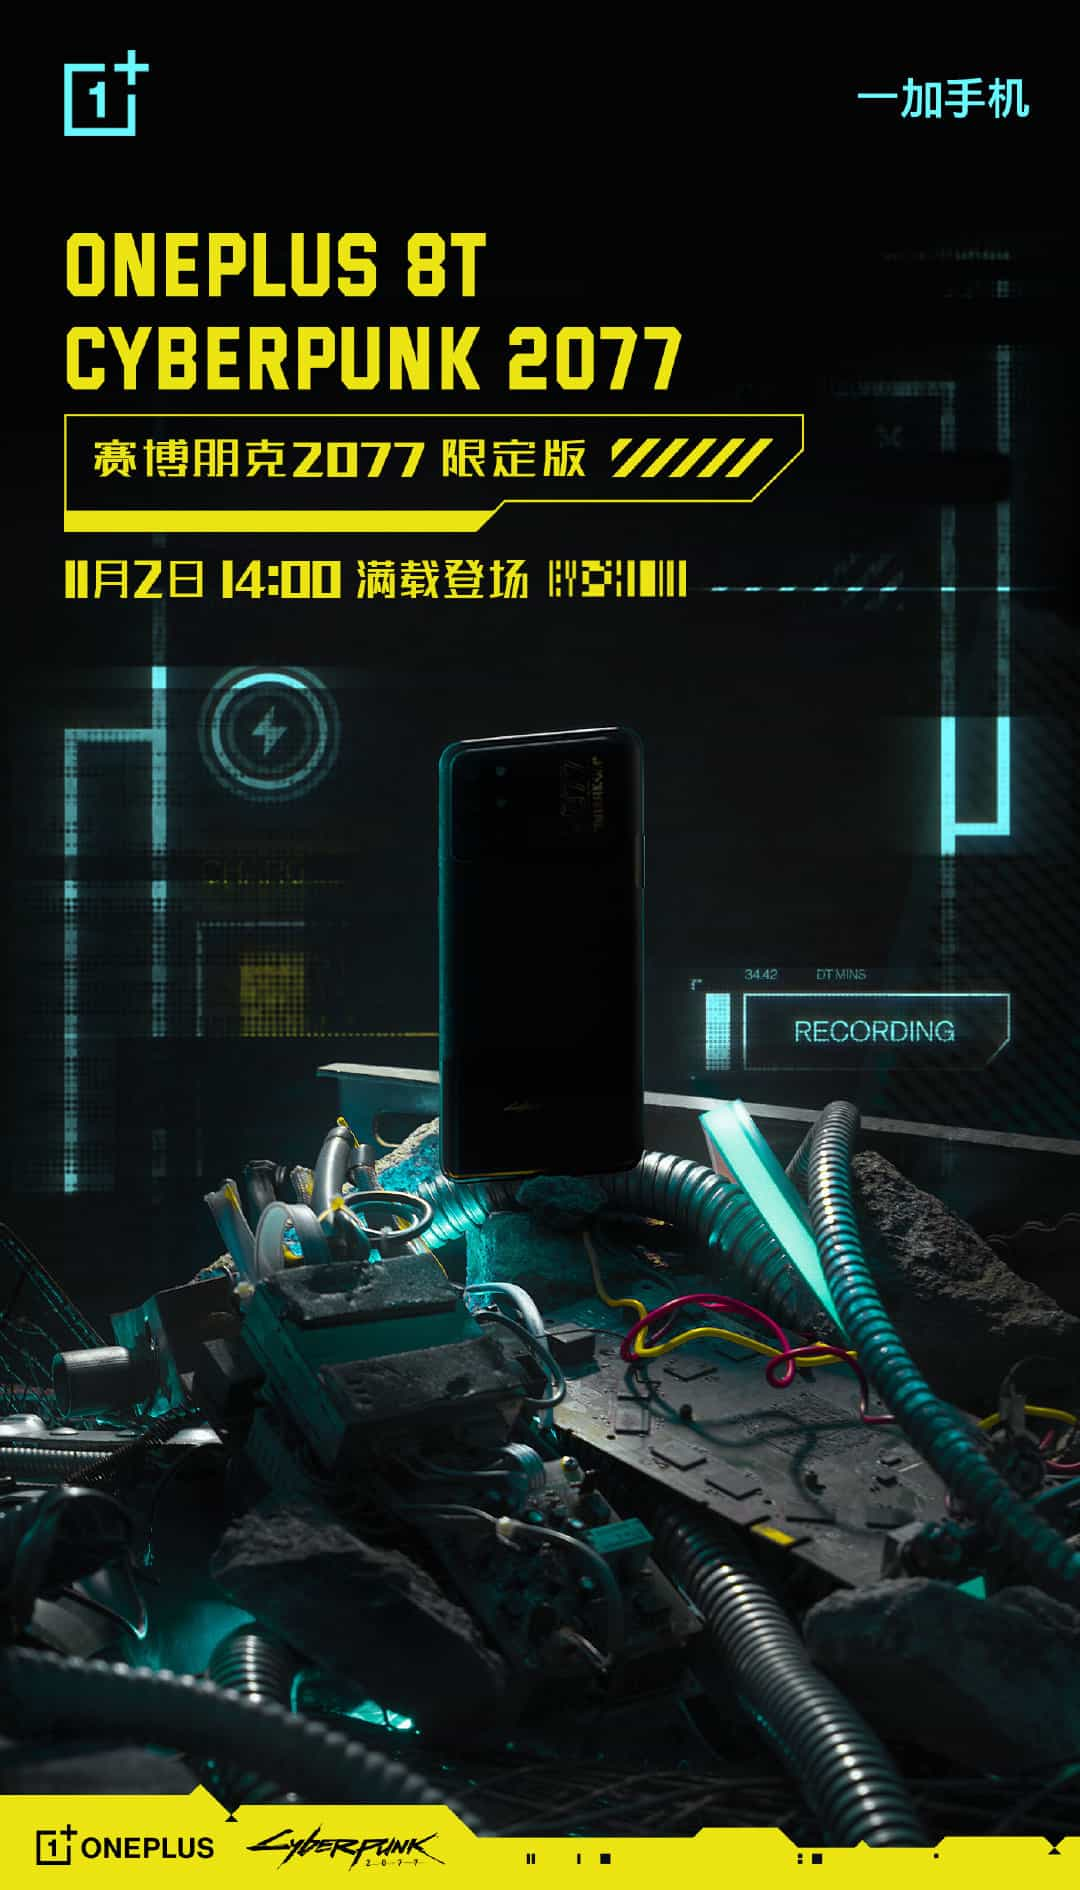 OnePlus 8T Cyberpunk 2077 edition launch date 1